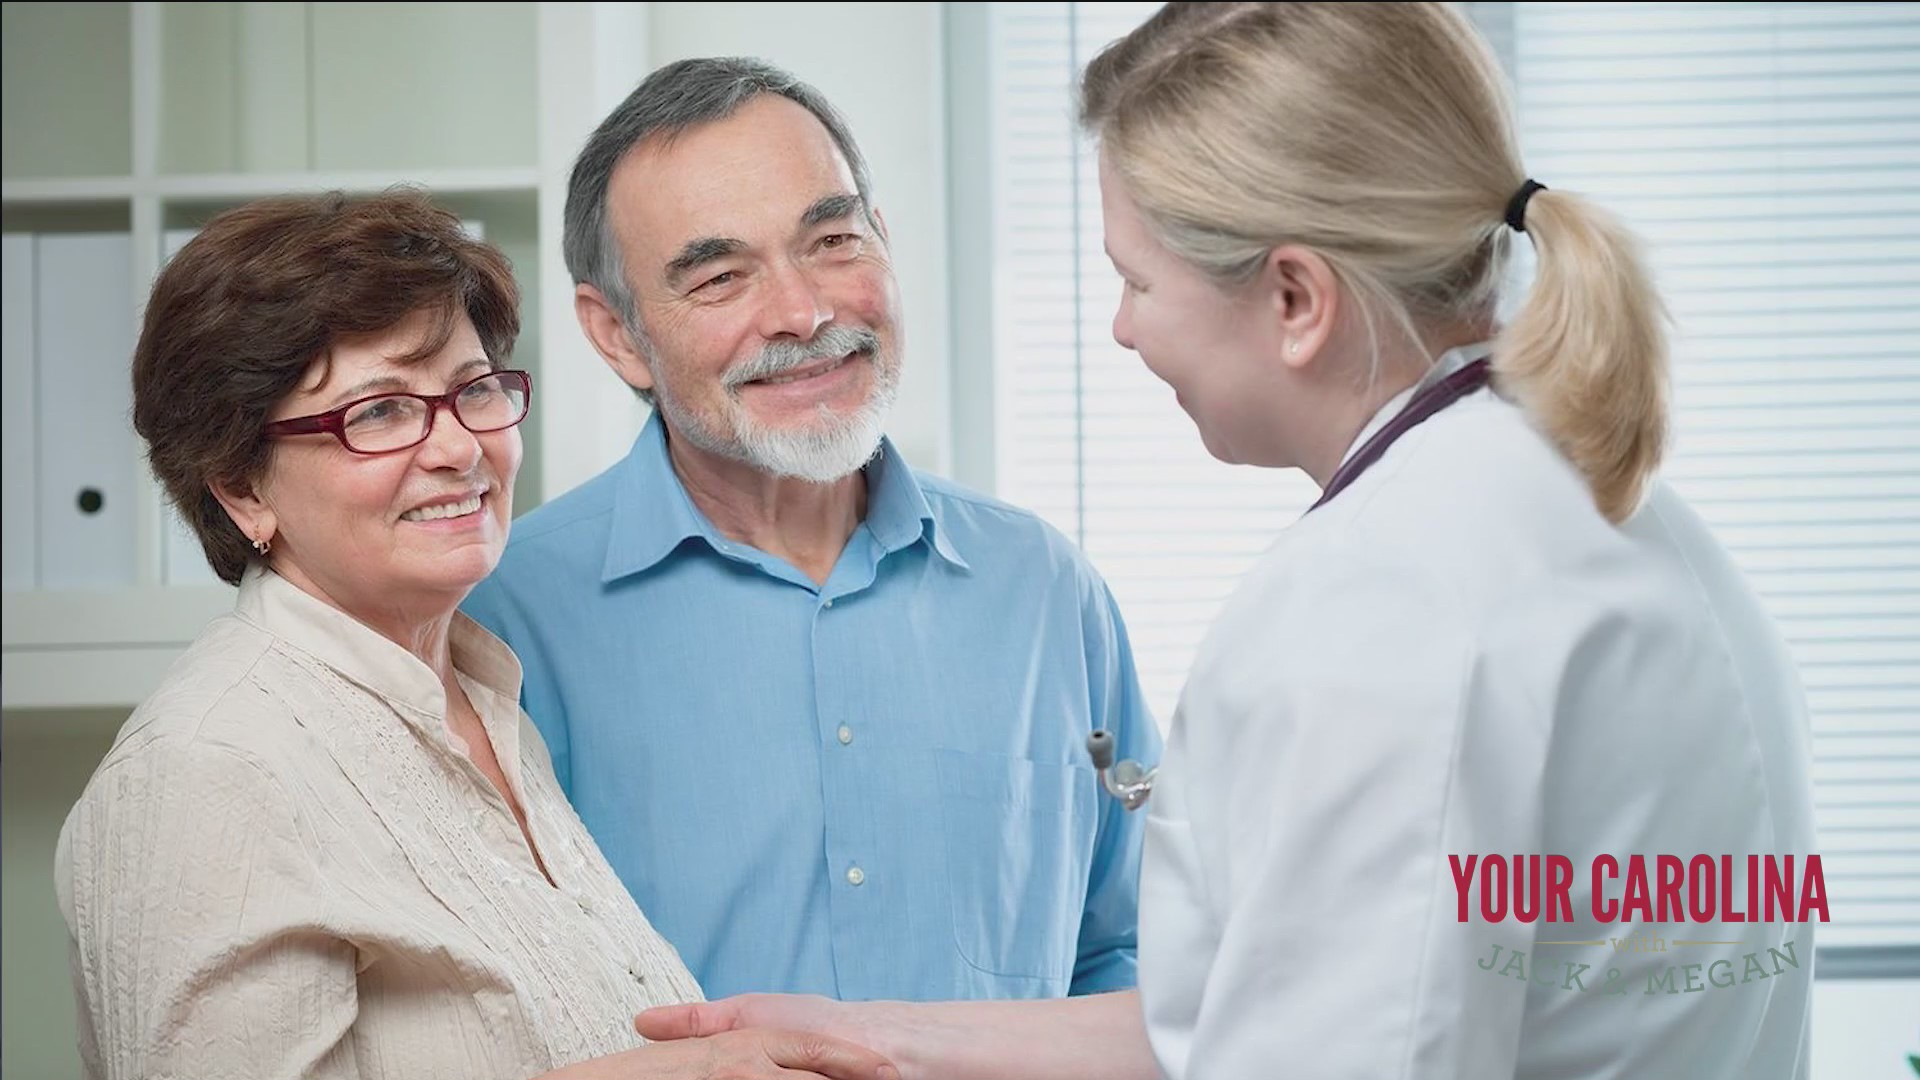 Partners in Primary Care - Important For Seniors To Schedule An Annual Visit With Primary Care Physician